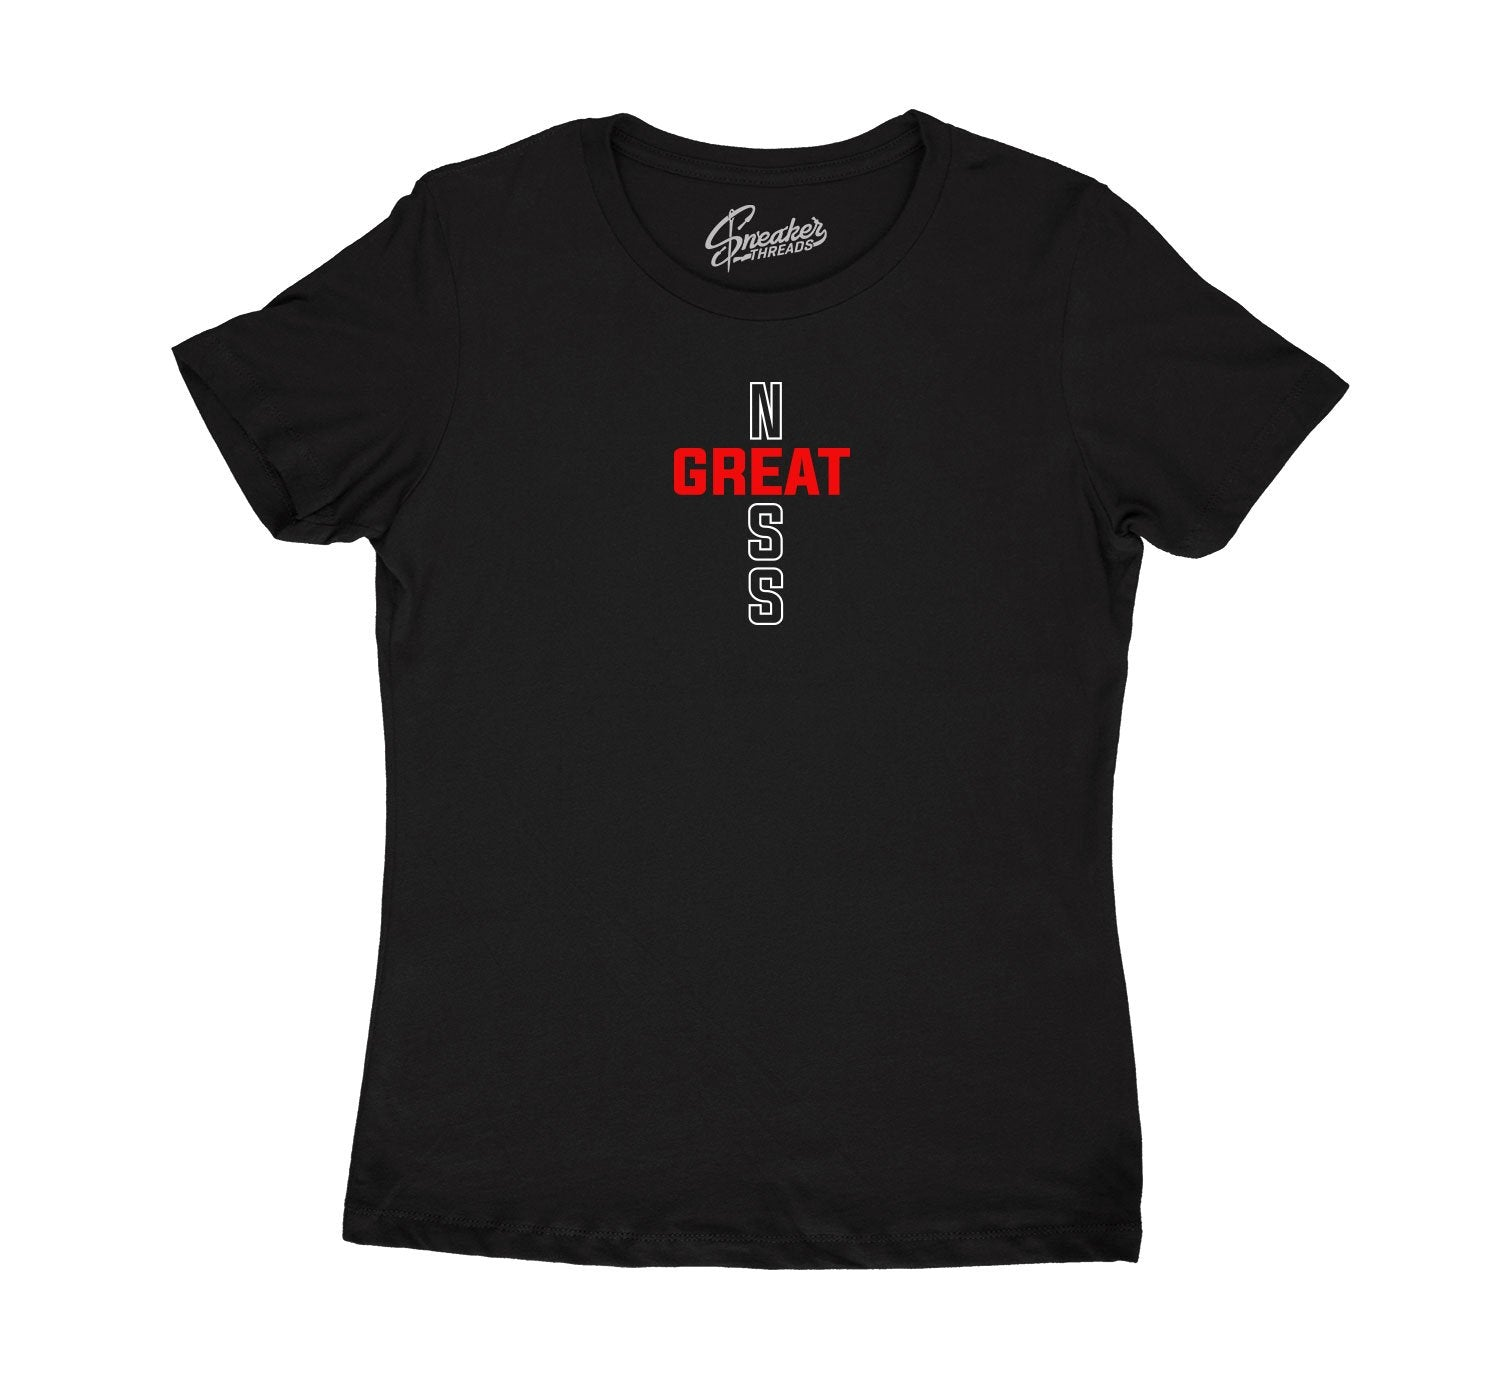 ladies shirts designed to match the Jordan 11 retro bred sneaker collection